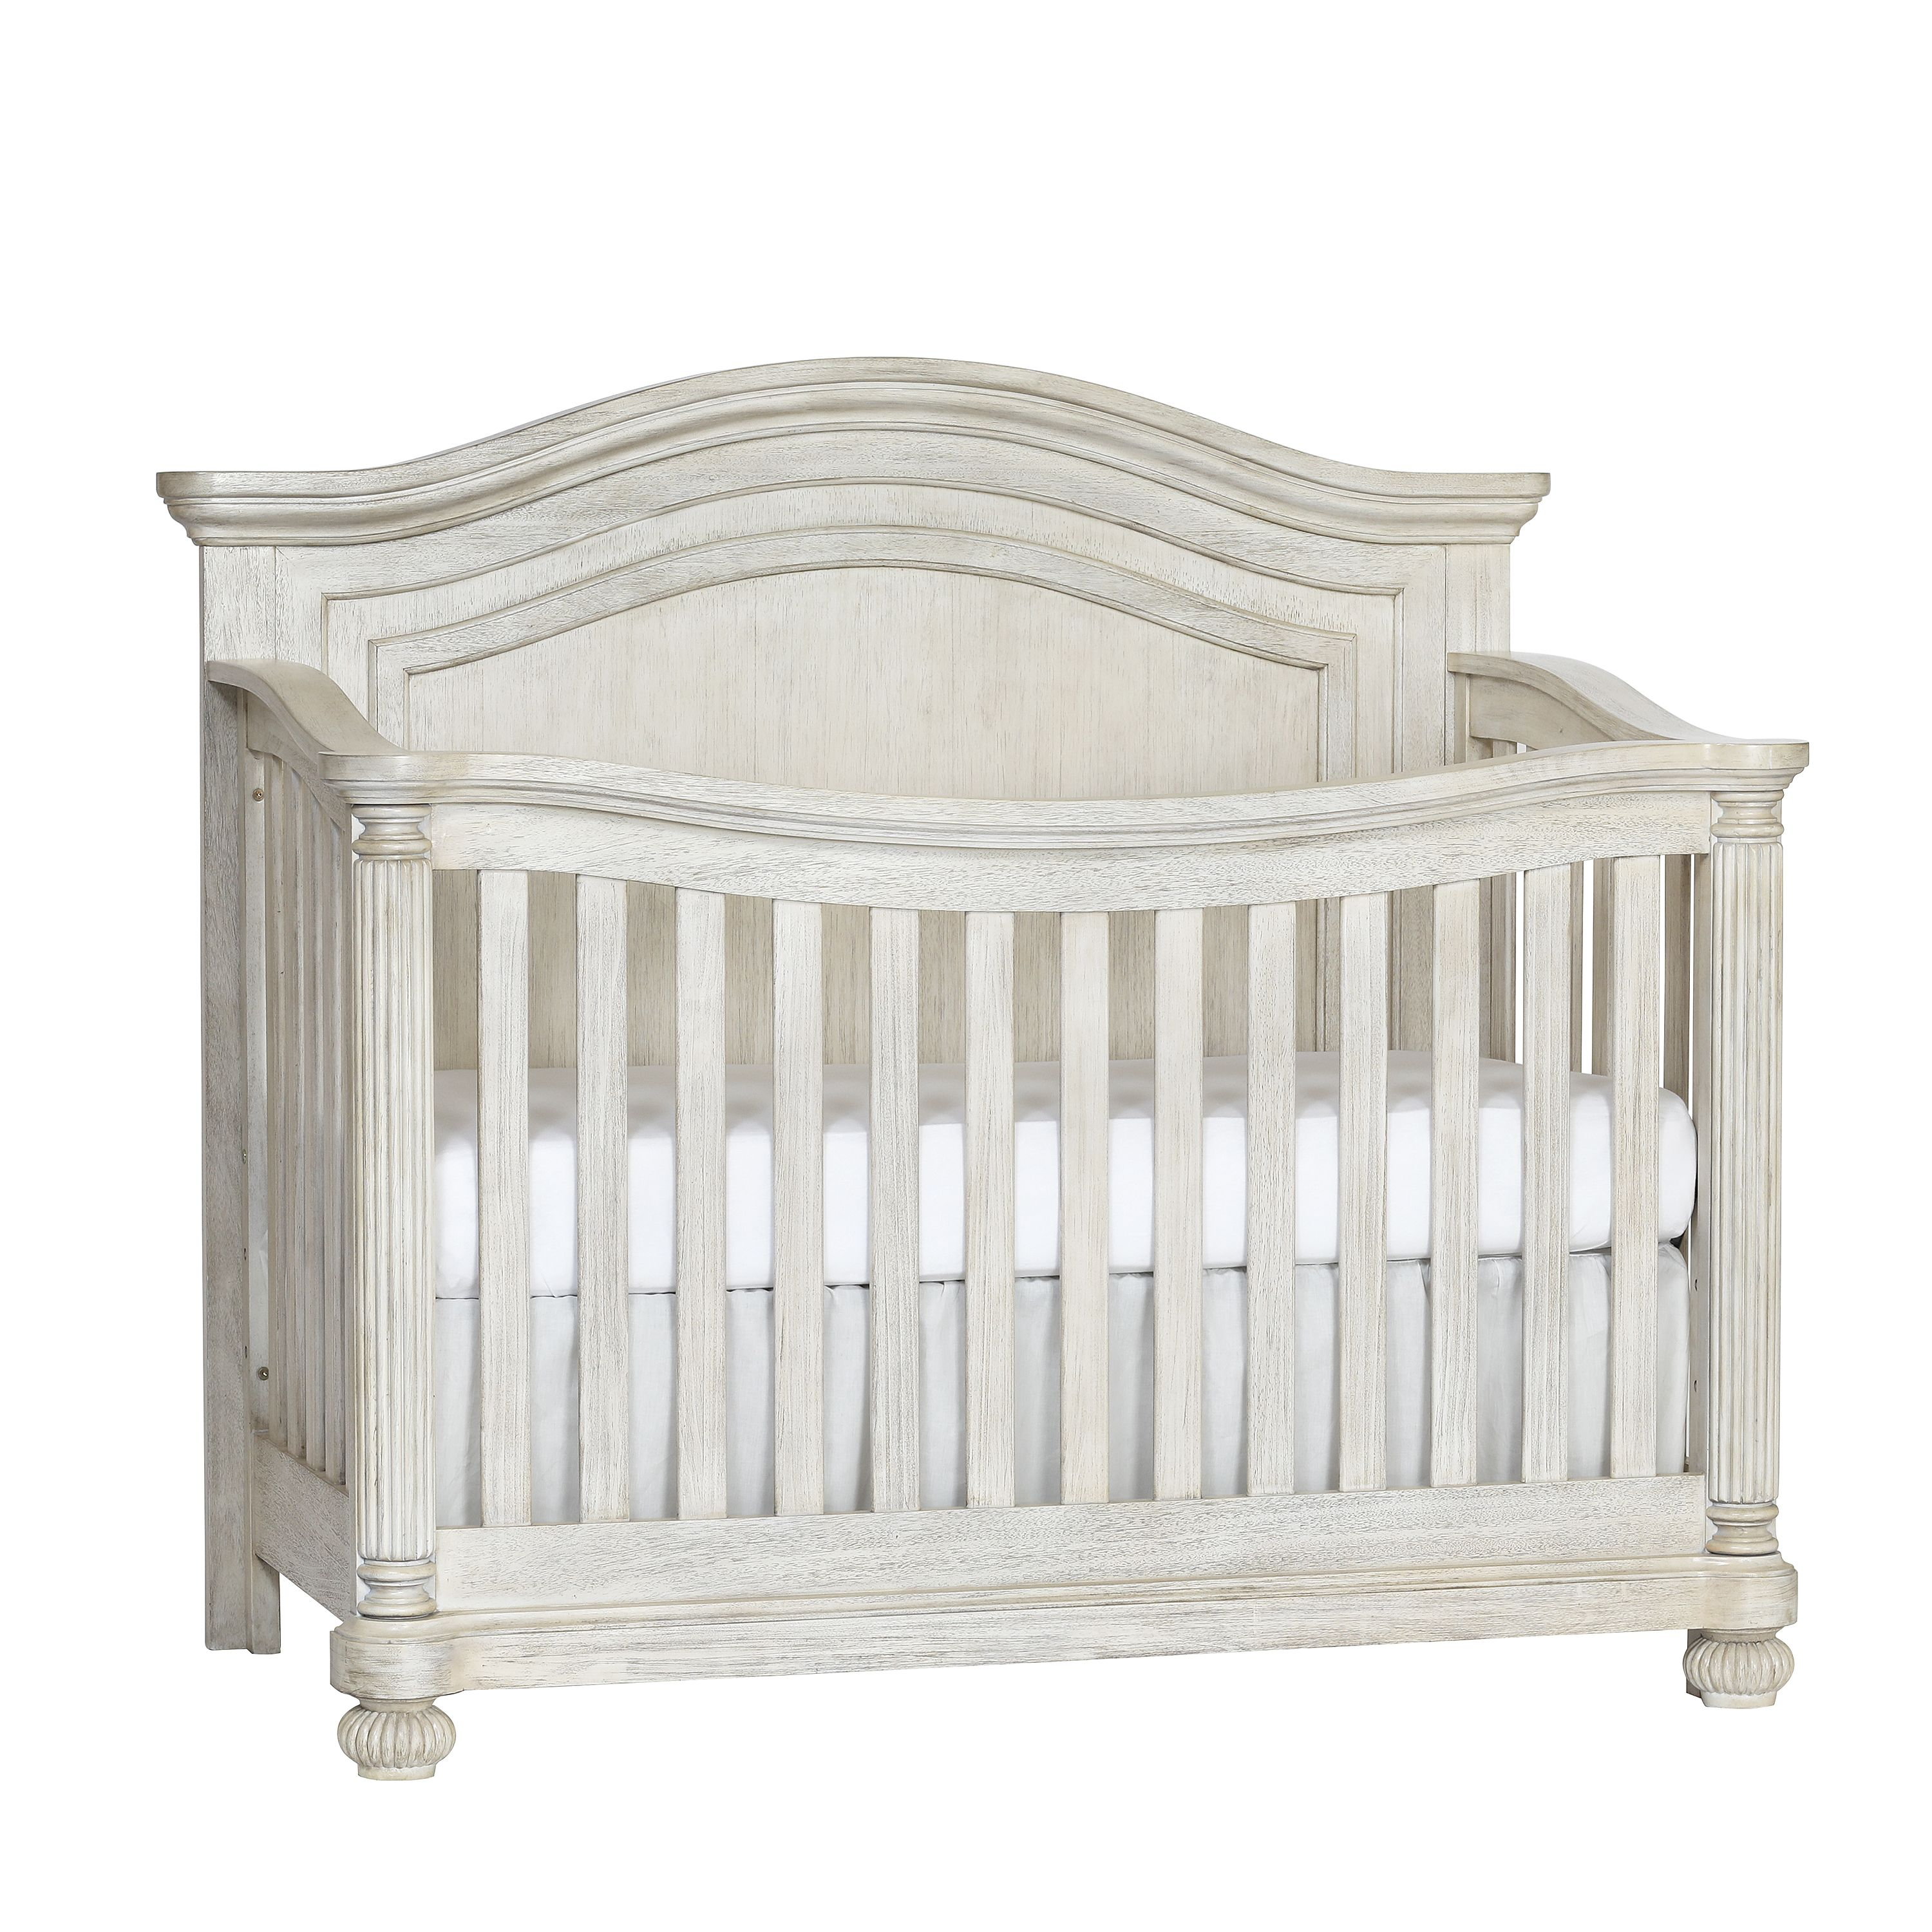 Kingsley Charleston Crib In Weathered White Baby Room Colors